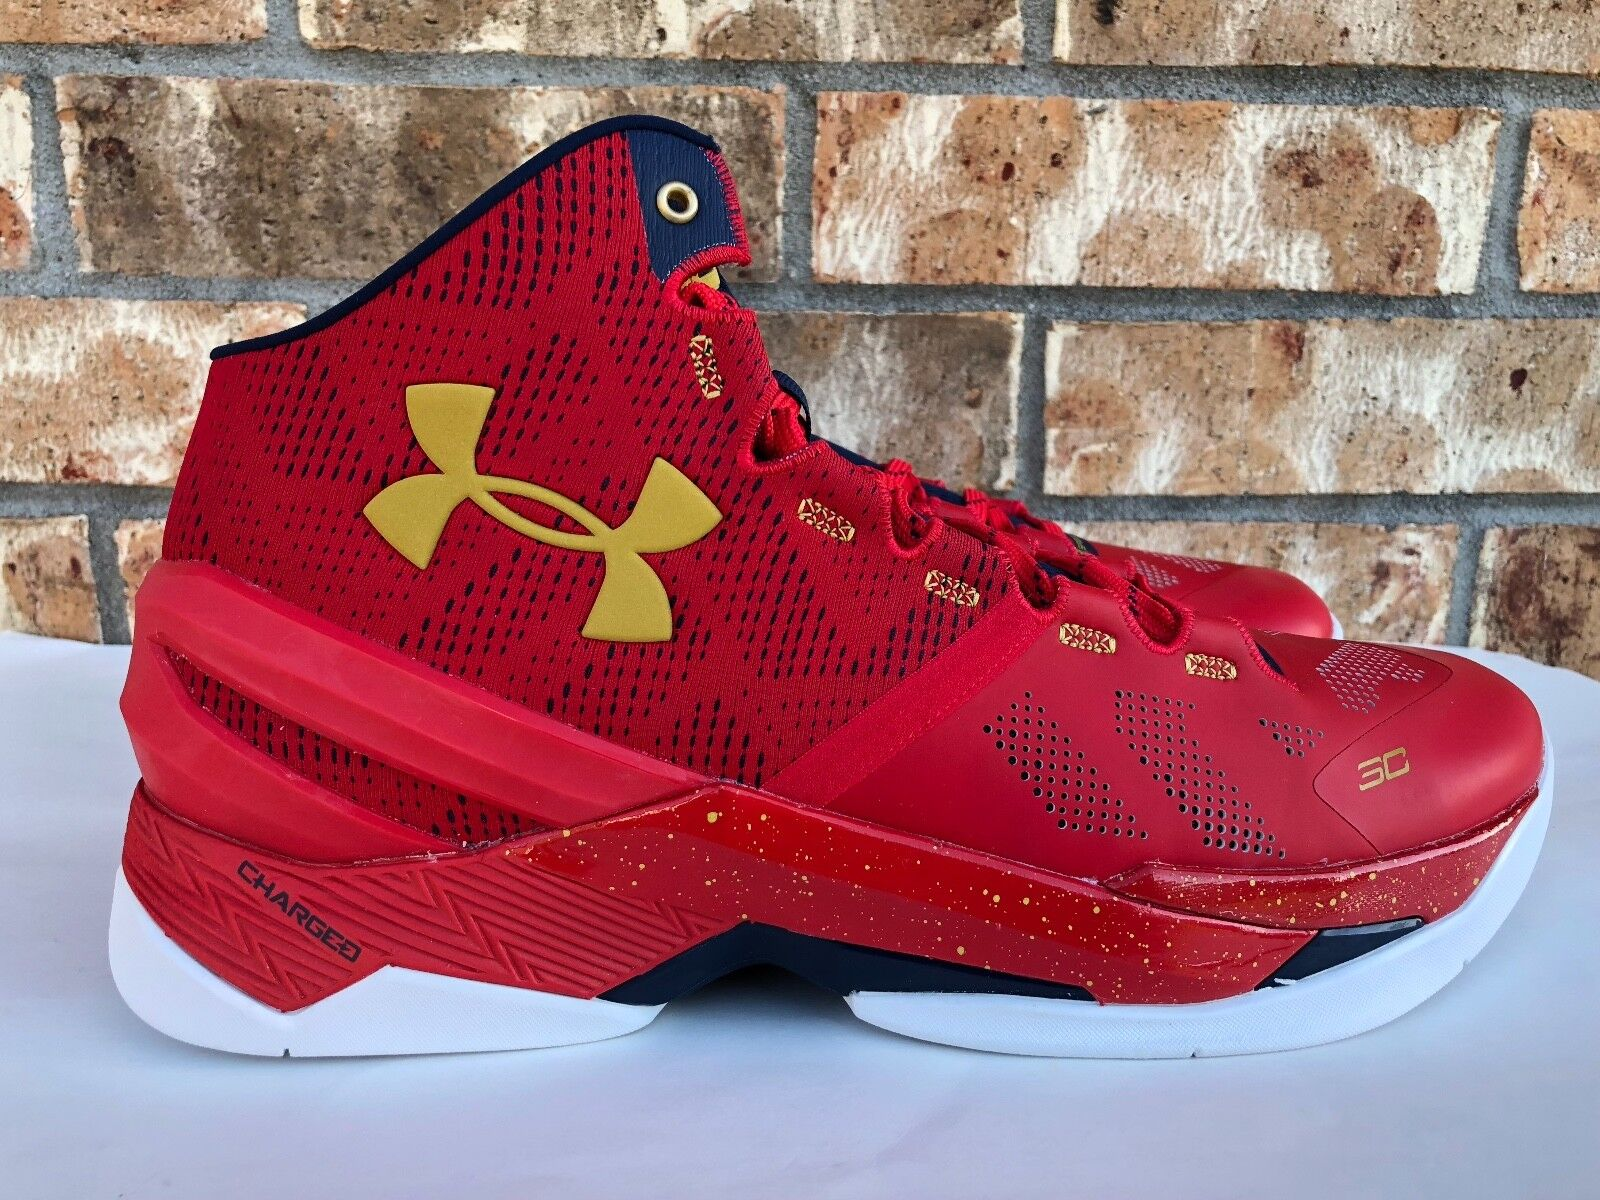 lowest price 9352d 8c920 Men s Under Armour Curry Curry Curry 2 Basketball Shoes General Red Gold SZ  11.5 1259007-